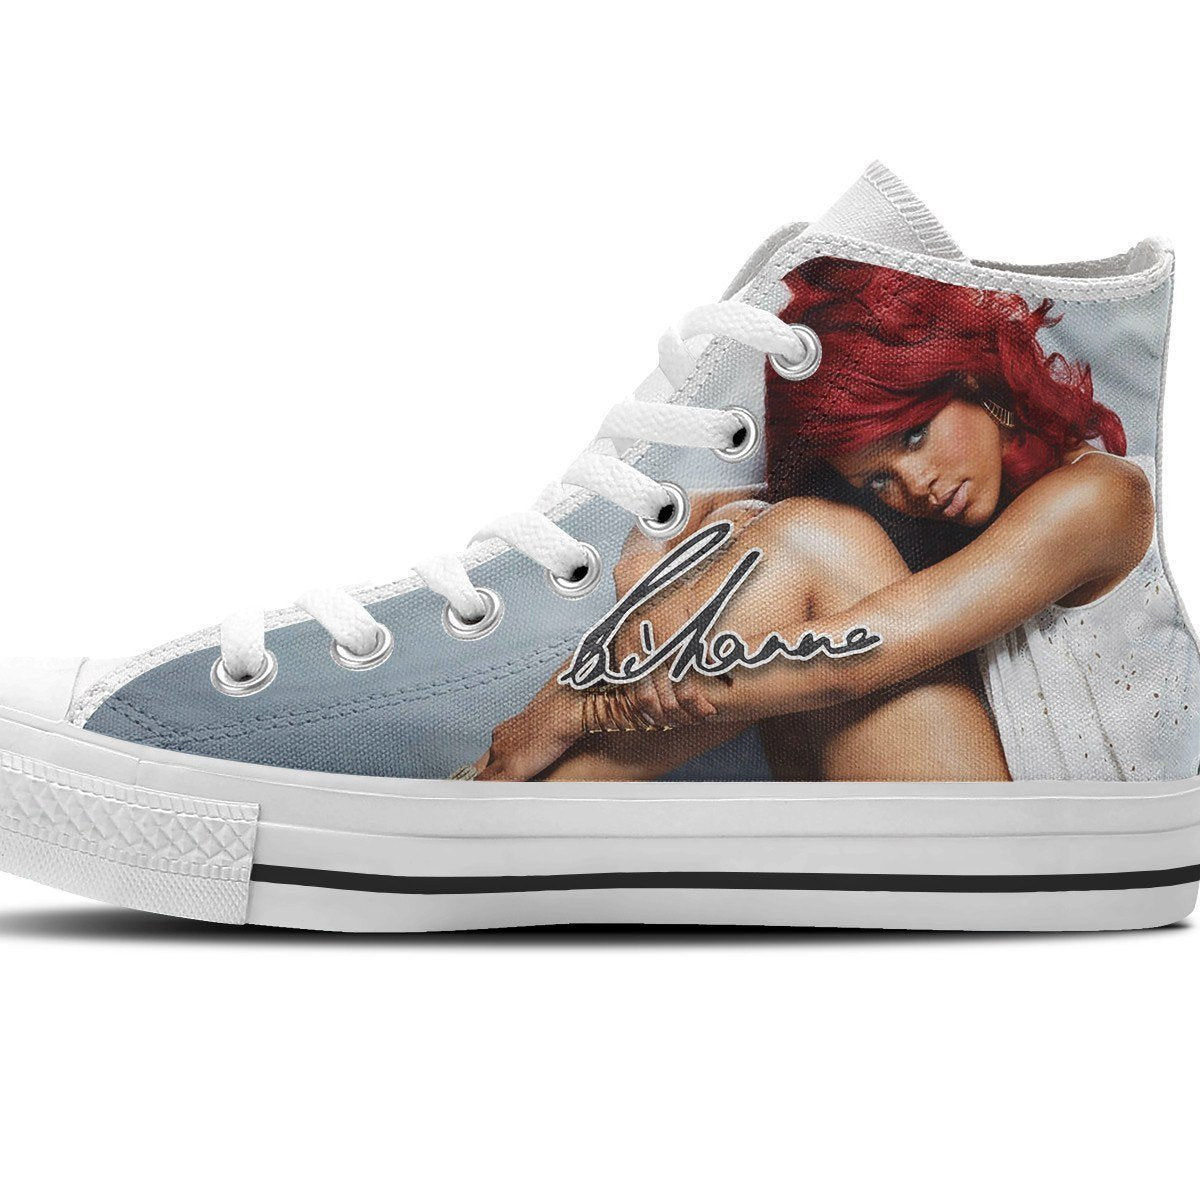 rihanna ladies high top sneakers